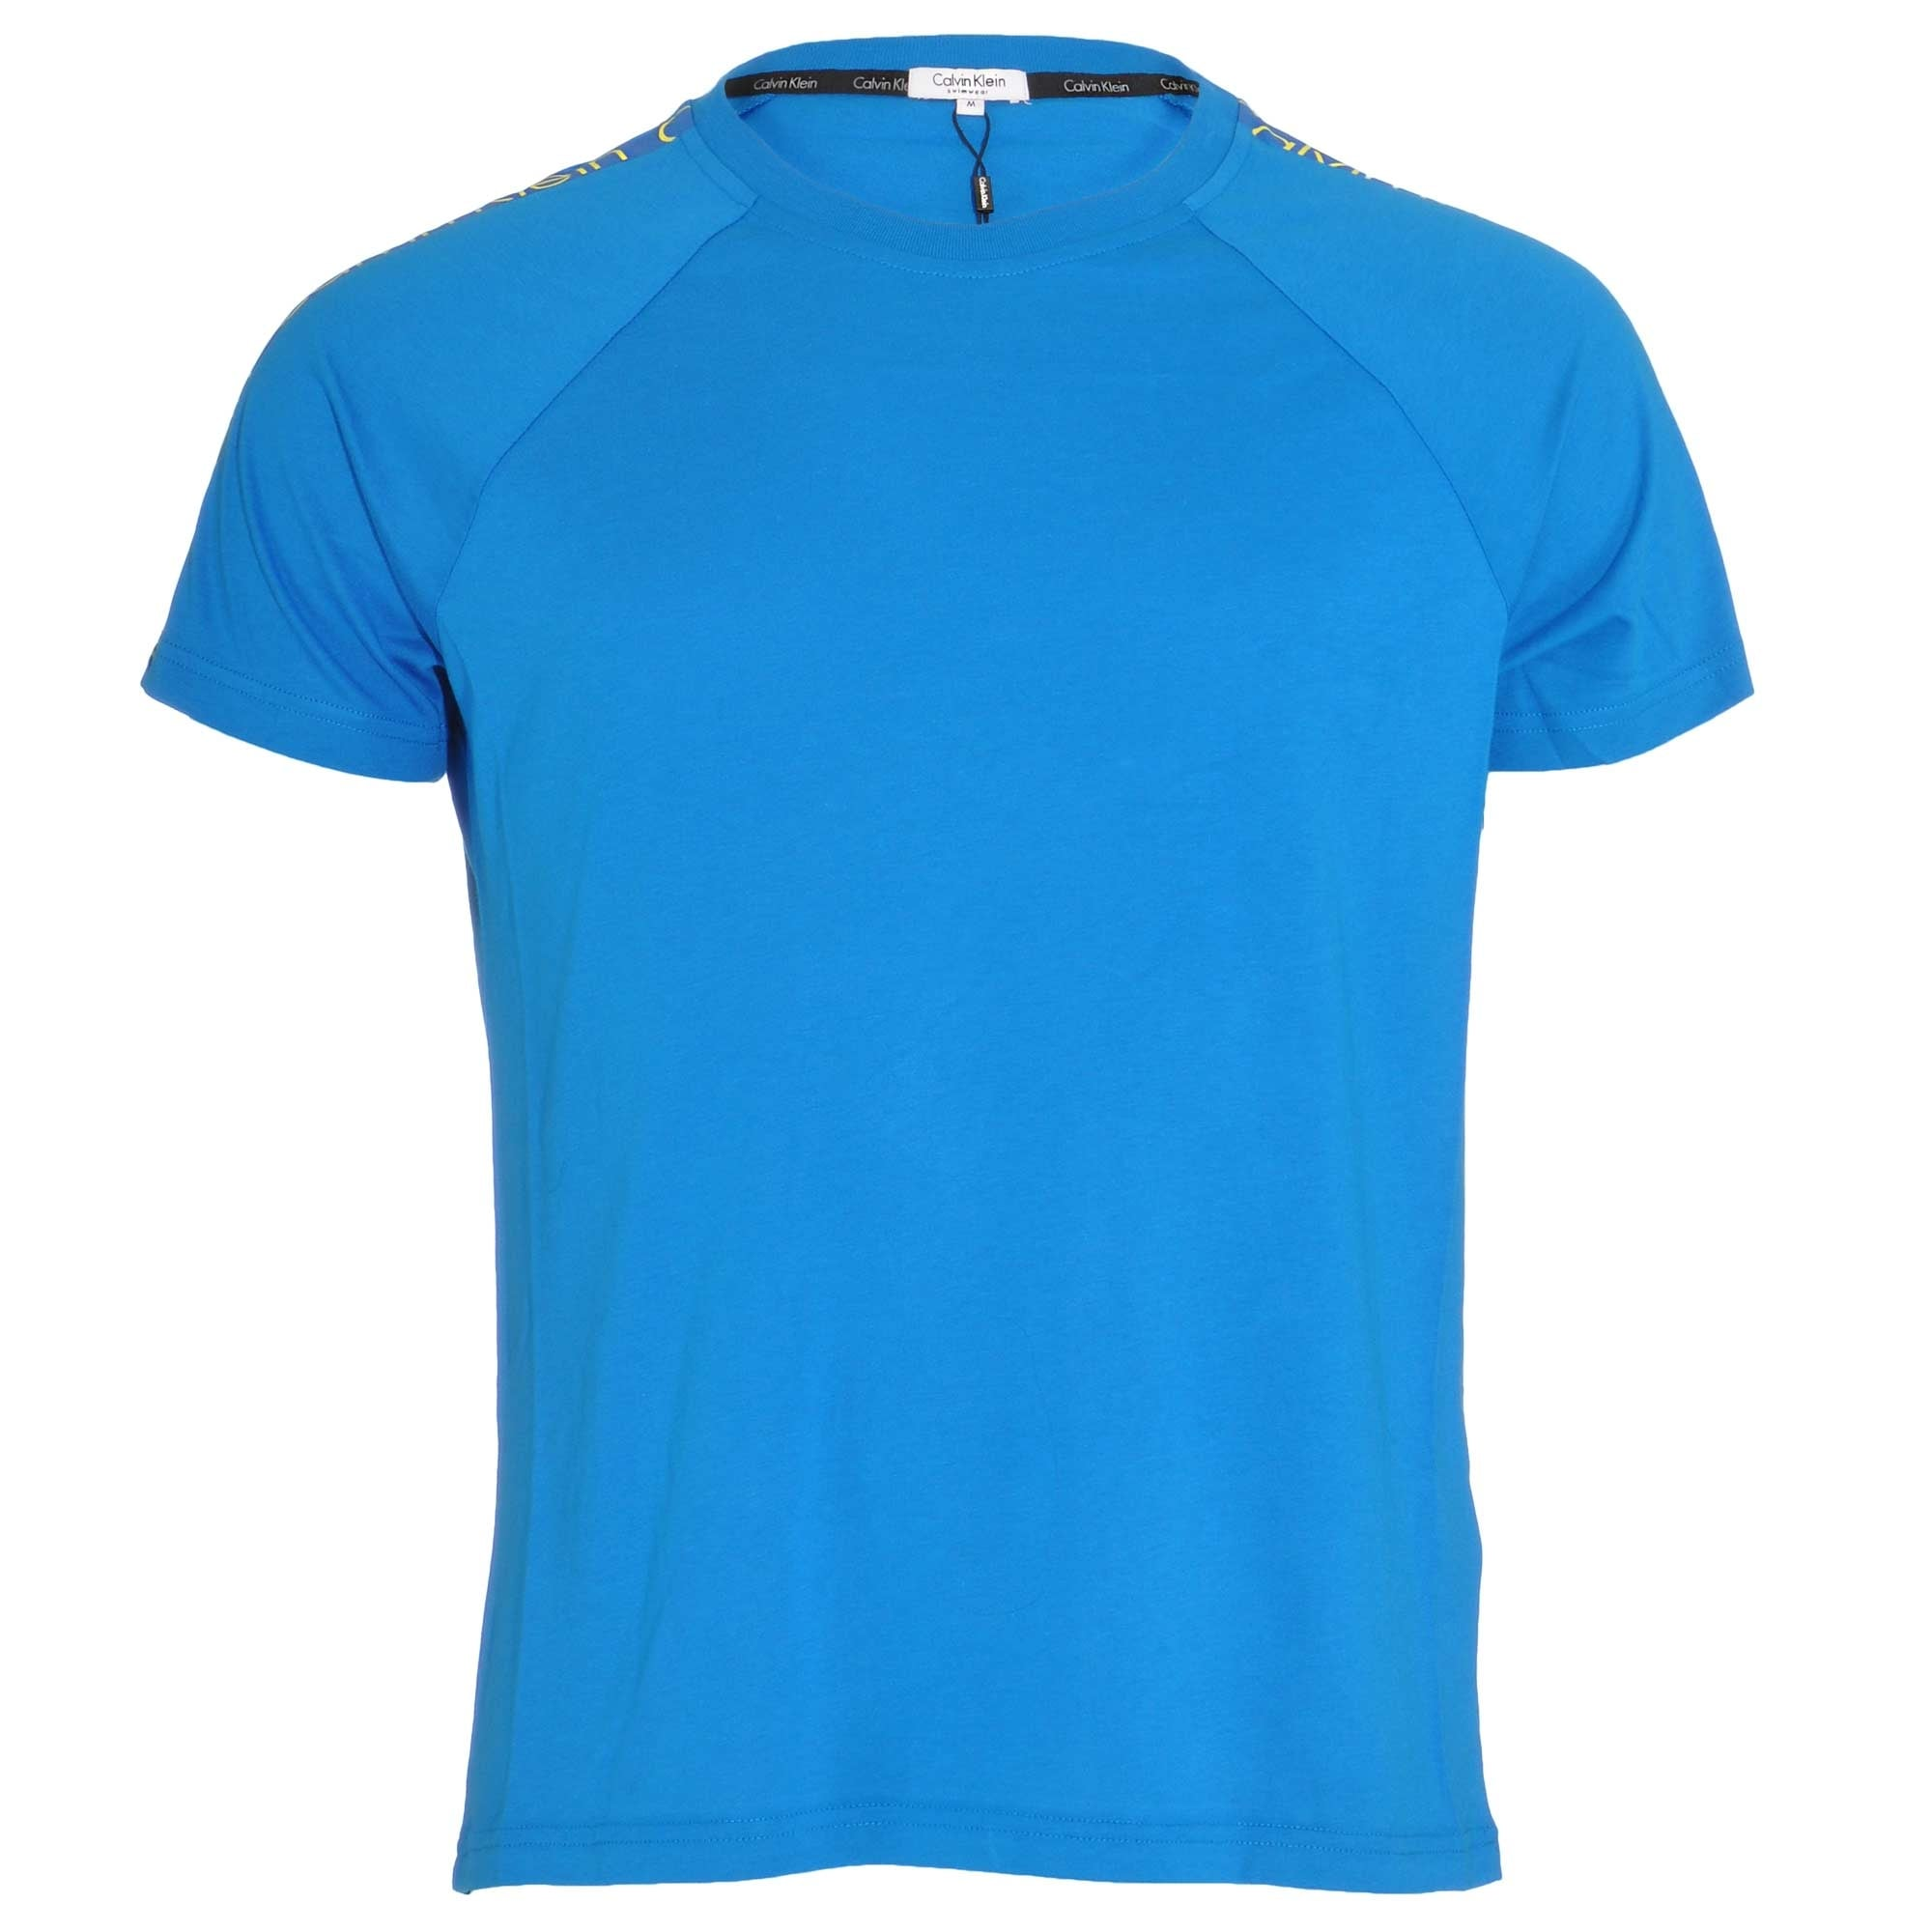 Relaxed T-shirt - Core Logo Tape Calvin Klein Cheap Sale Get Authentic QfVaw